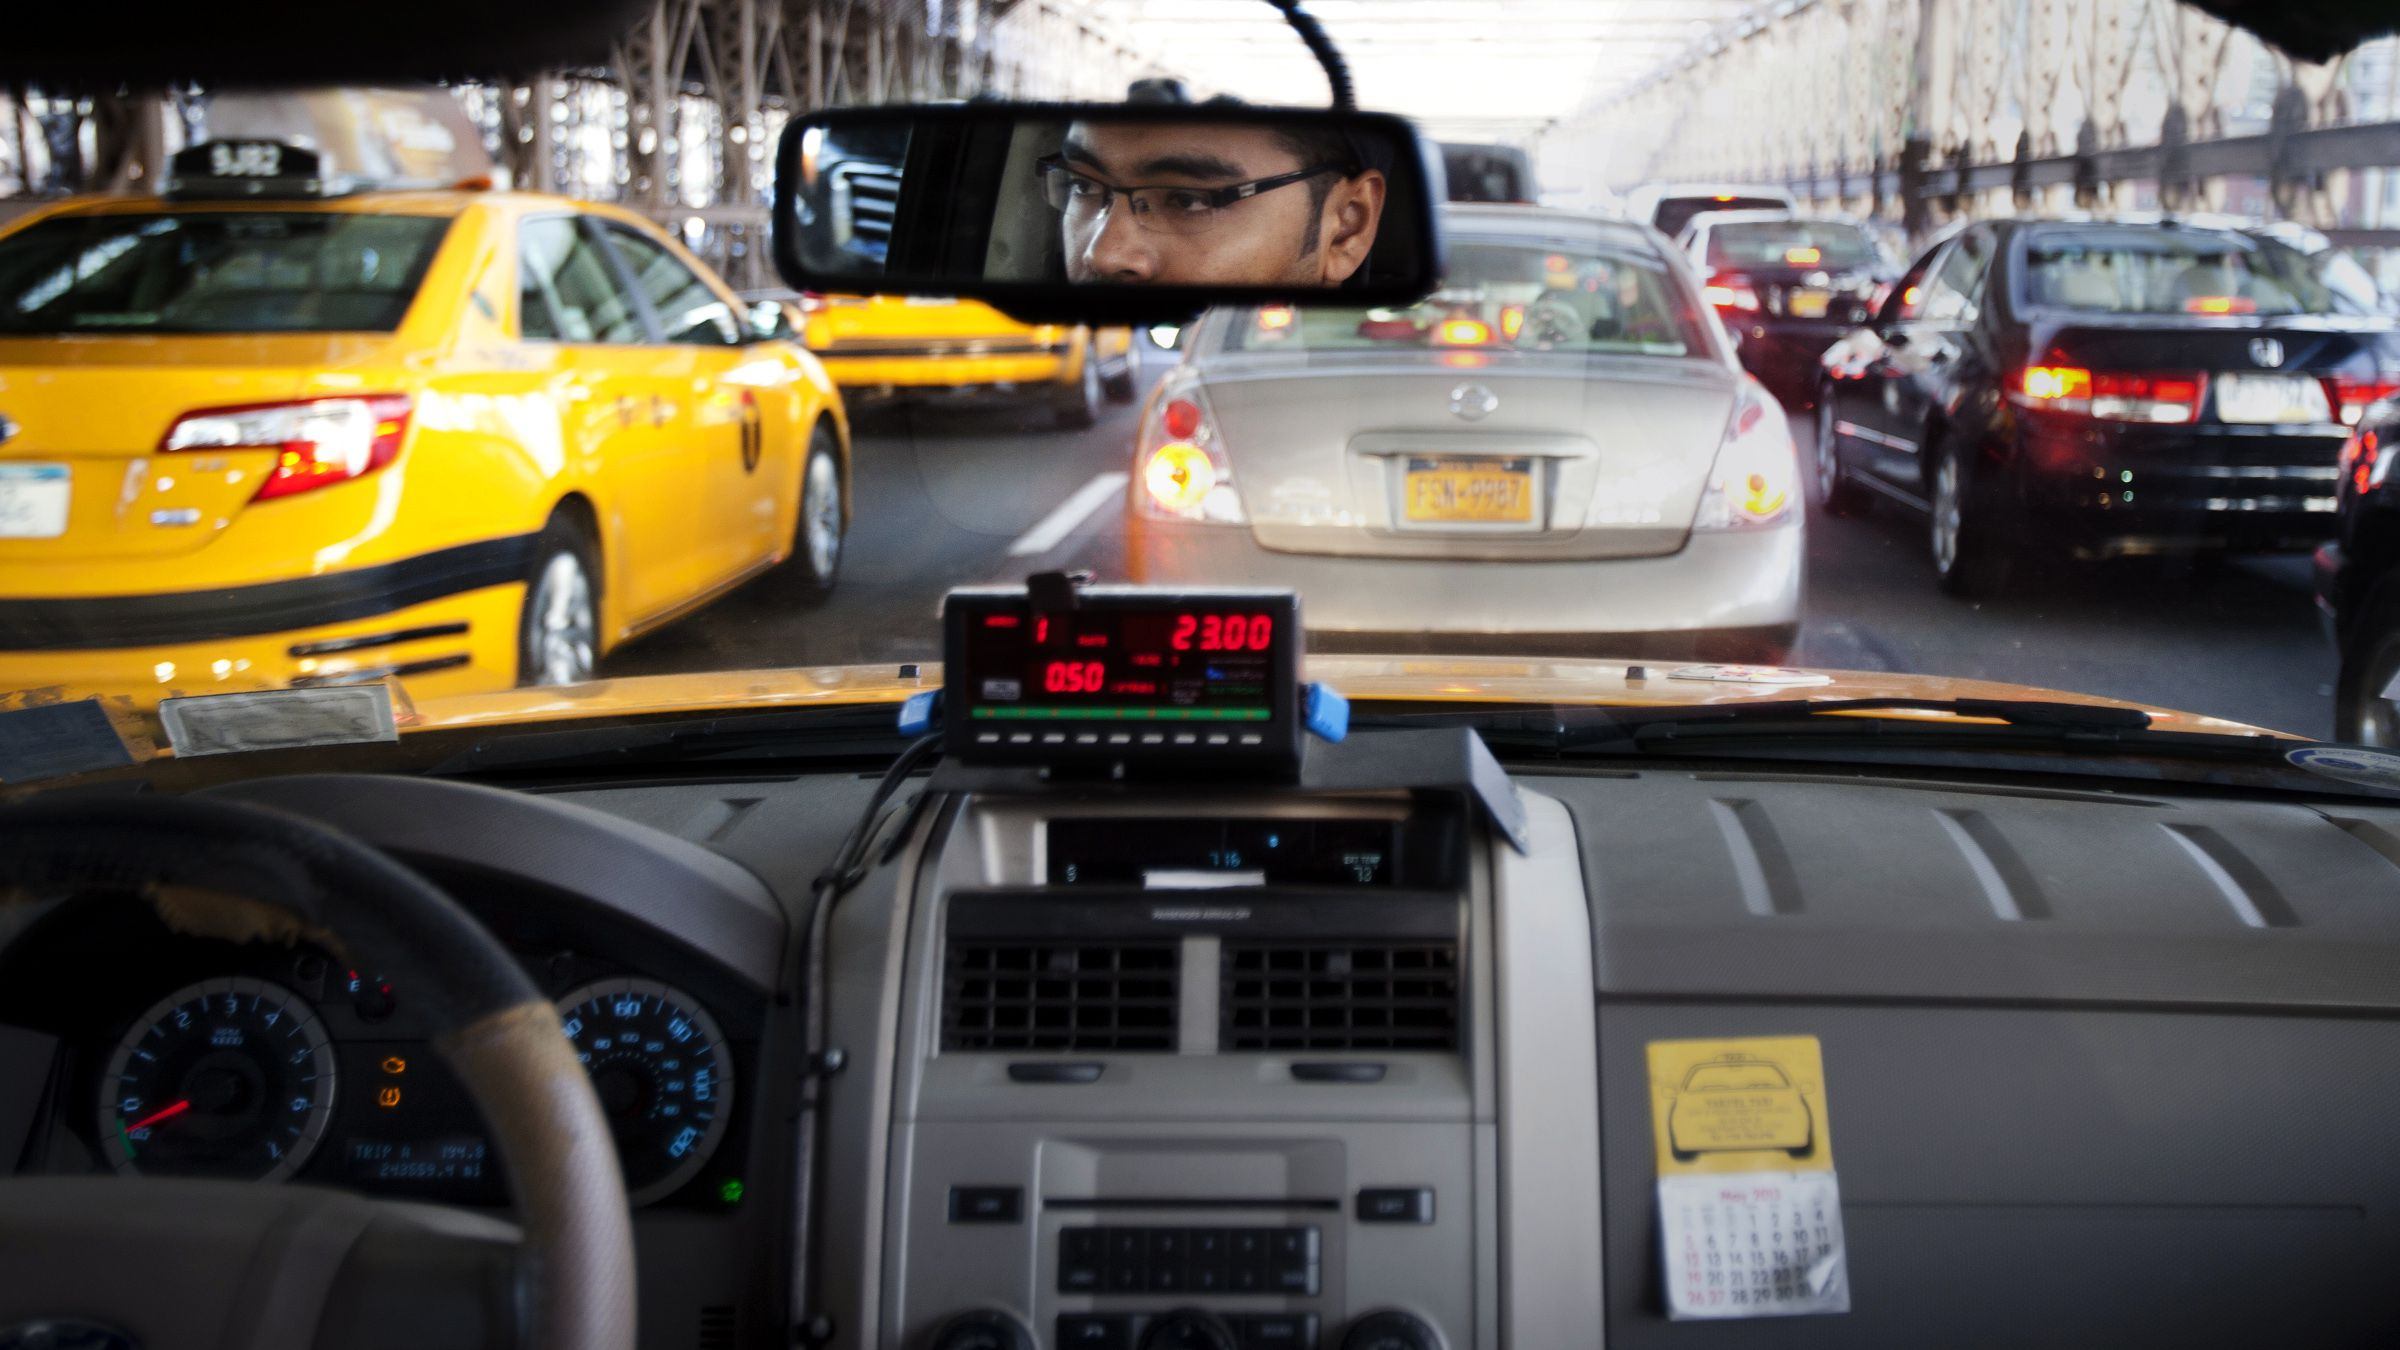 Taxi driver MD Hasan navigates through heavy traffic during Memorial Day over the Brooklyn Bridge in New York May 27, 2013. The bridge reopened on Monday evening after being closed for almost two hours at the end of a holiday weekend while New York City police investigated an unattended vehicle.